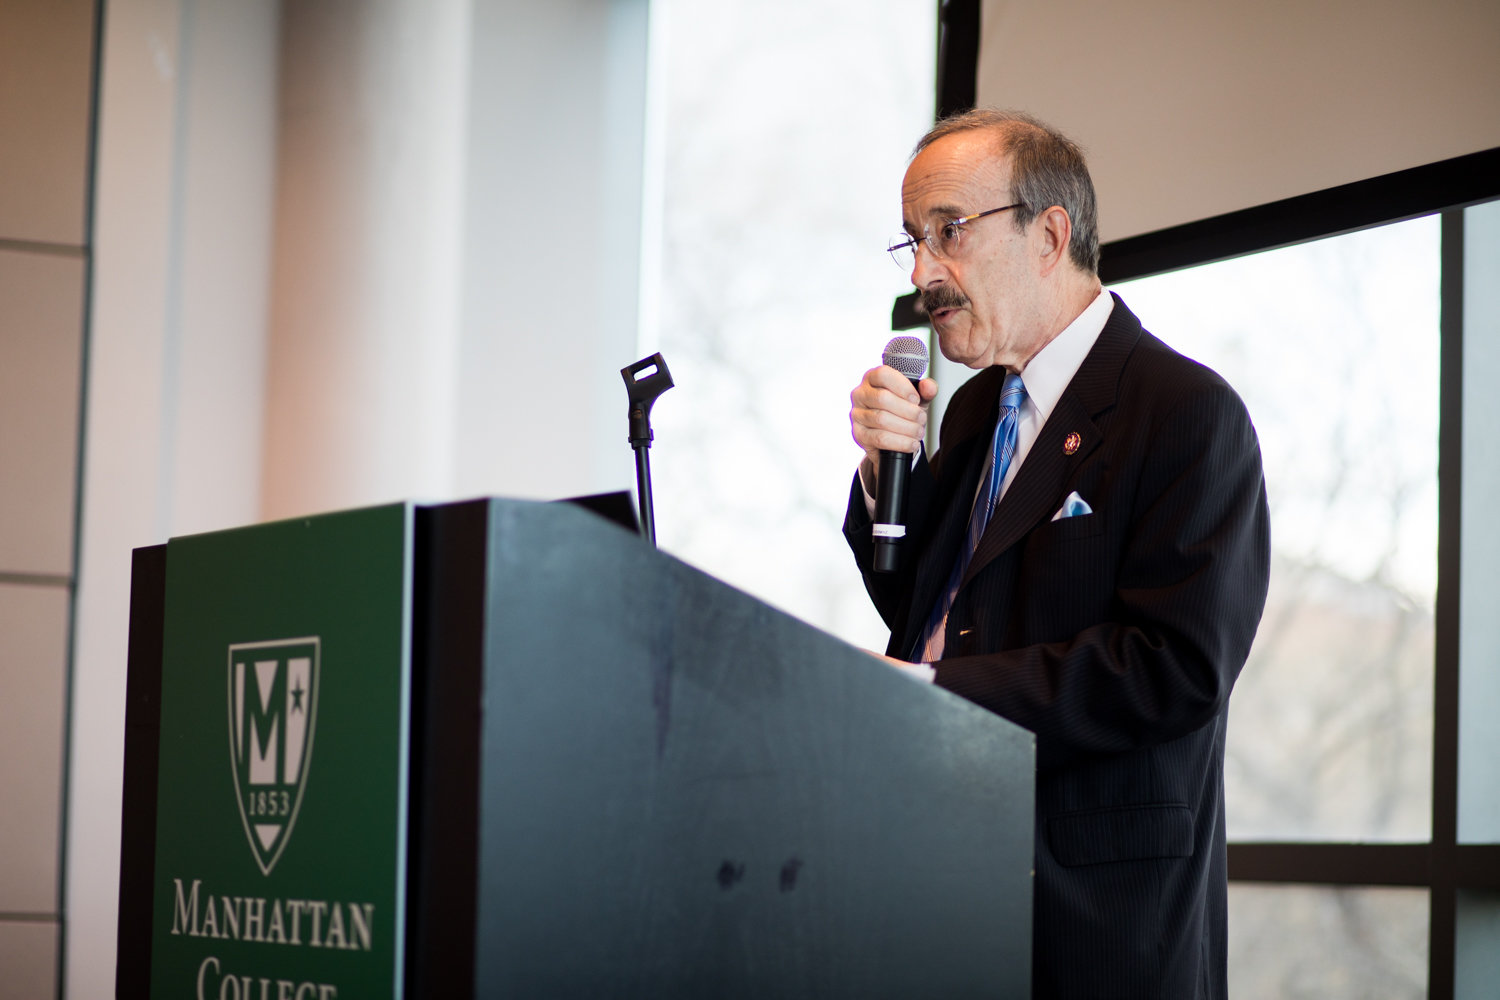 U.S. Rep. Eliot Engel, seen here at a Manhattan College event in April, supports the impeachment inquiry into President Trump.